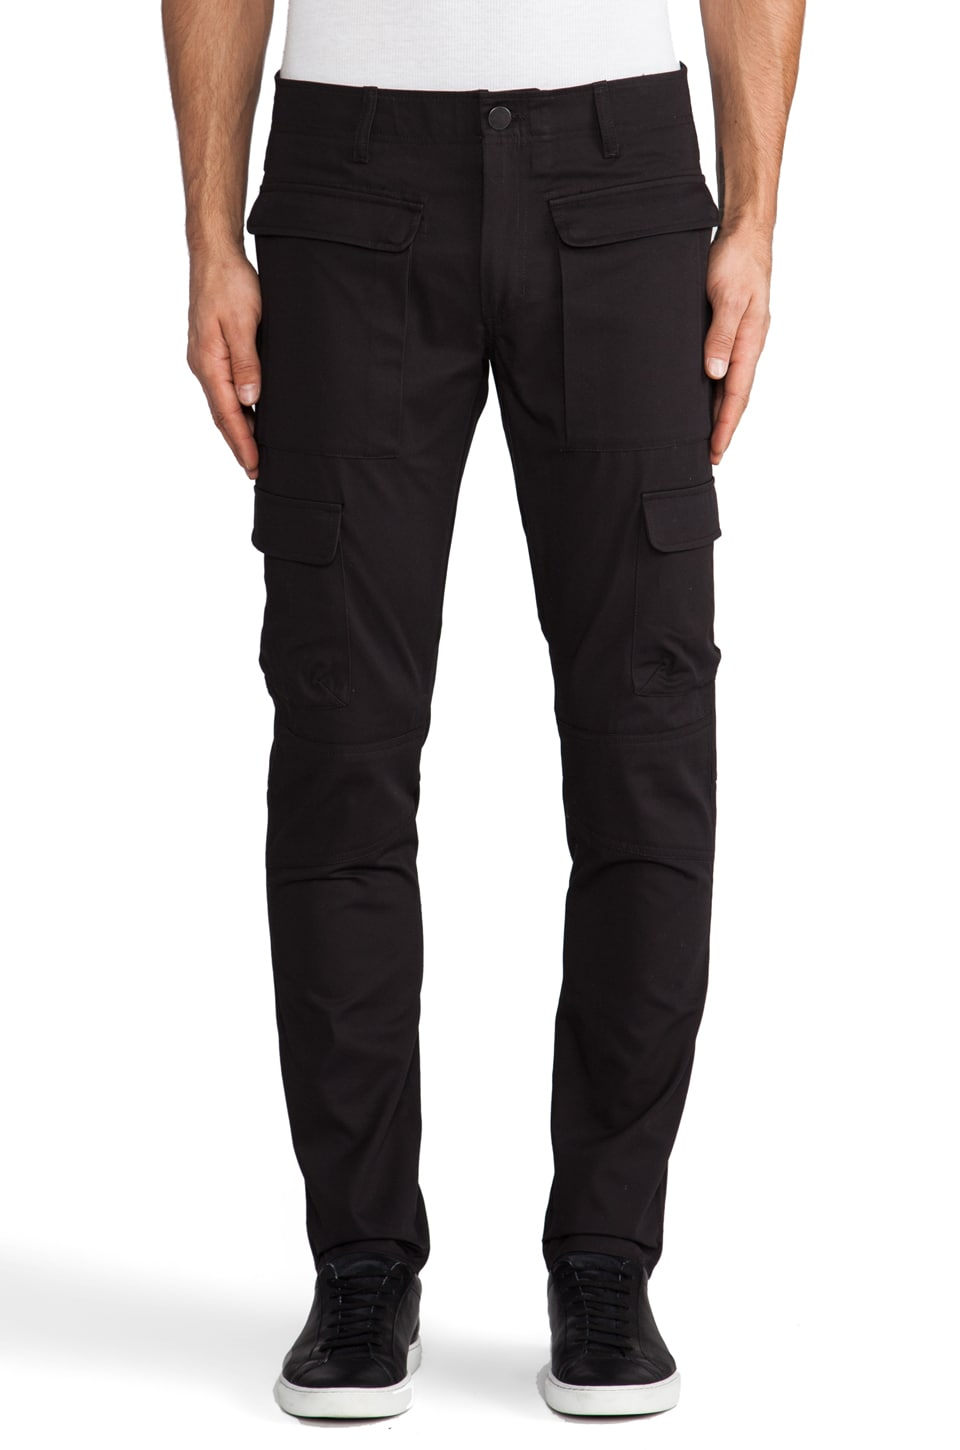 ISAORA Utility Pant in Black